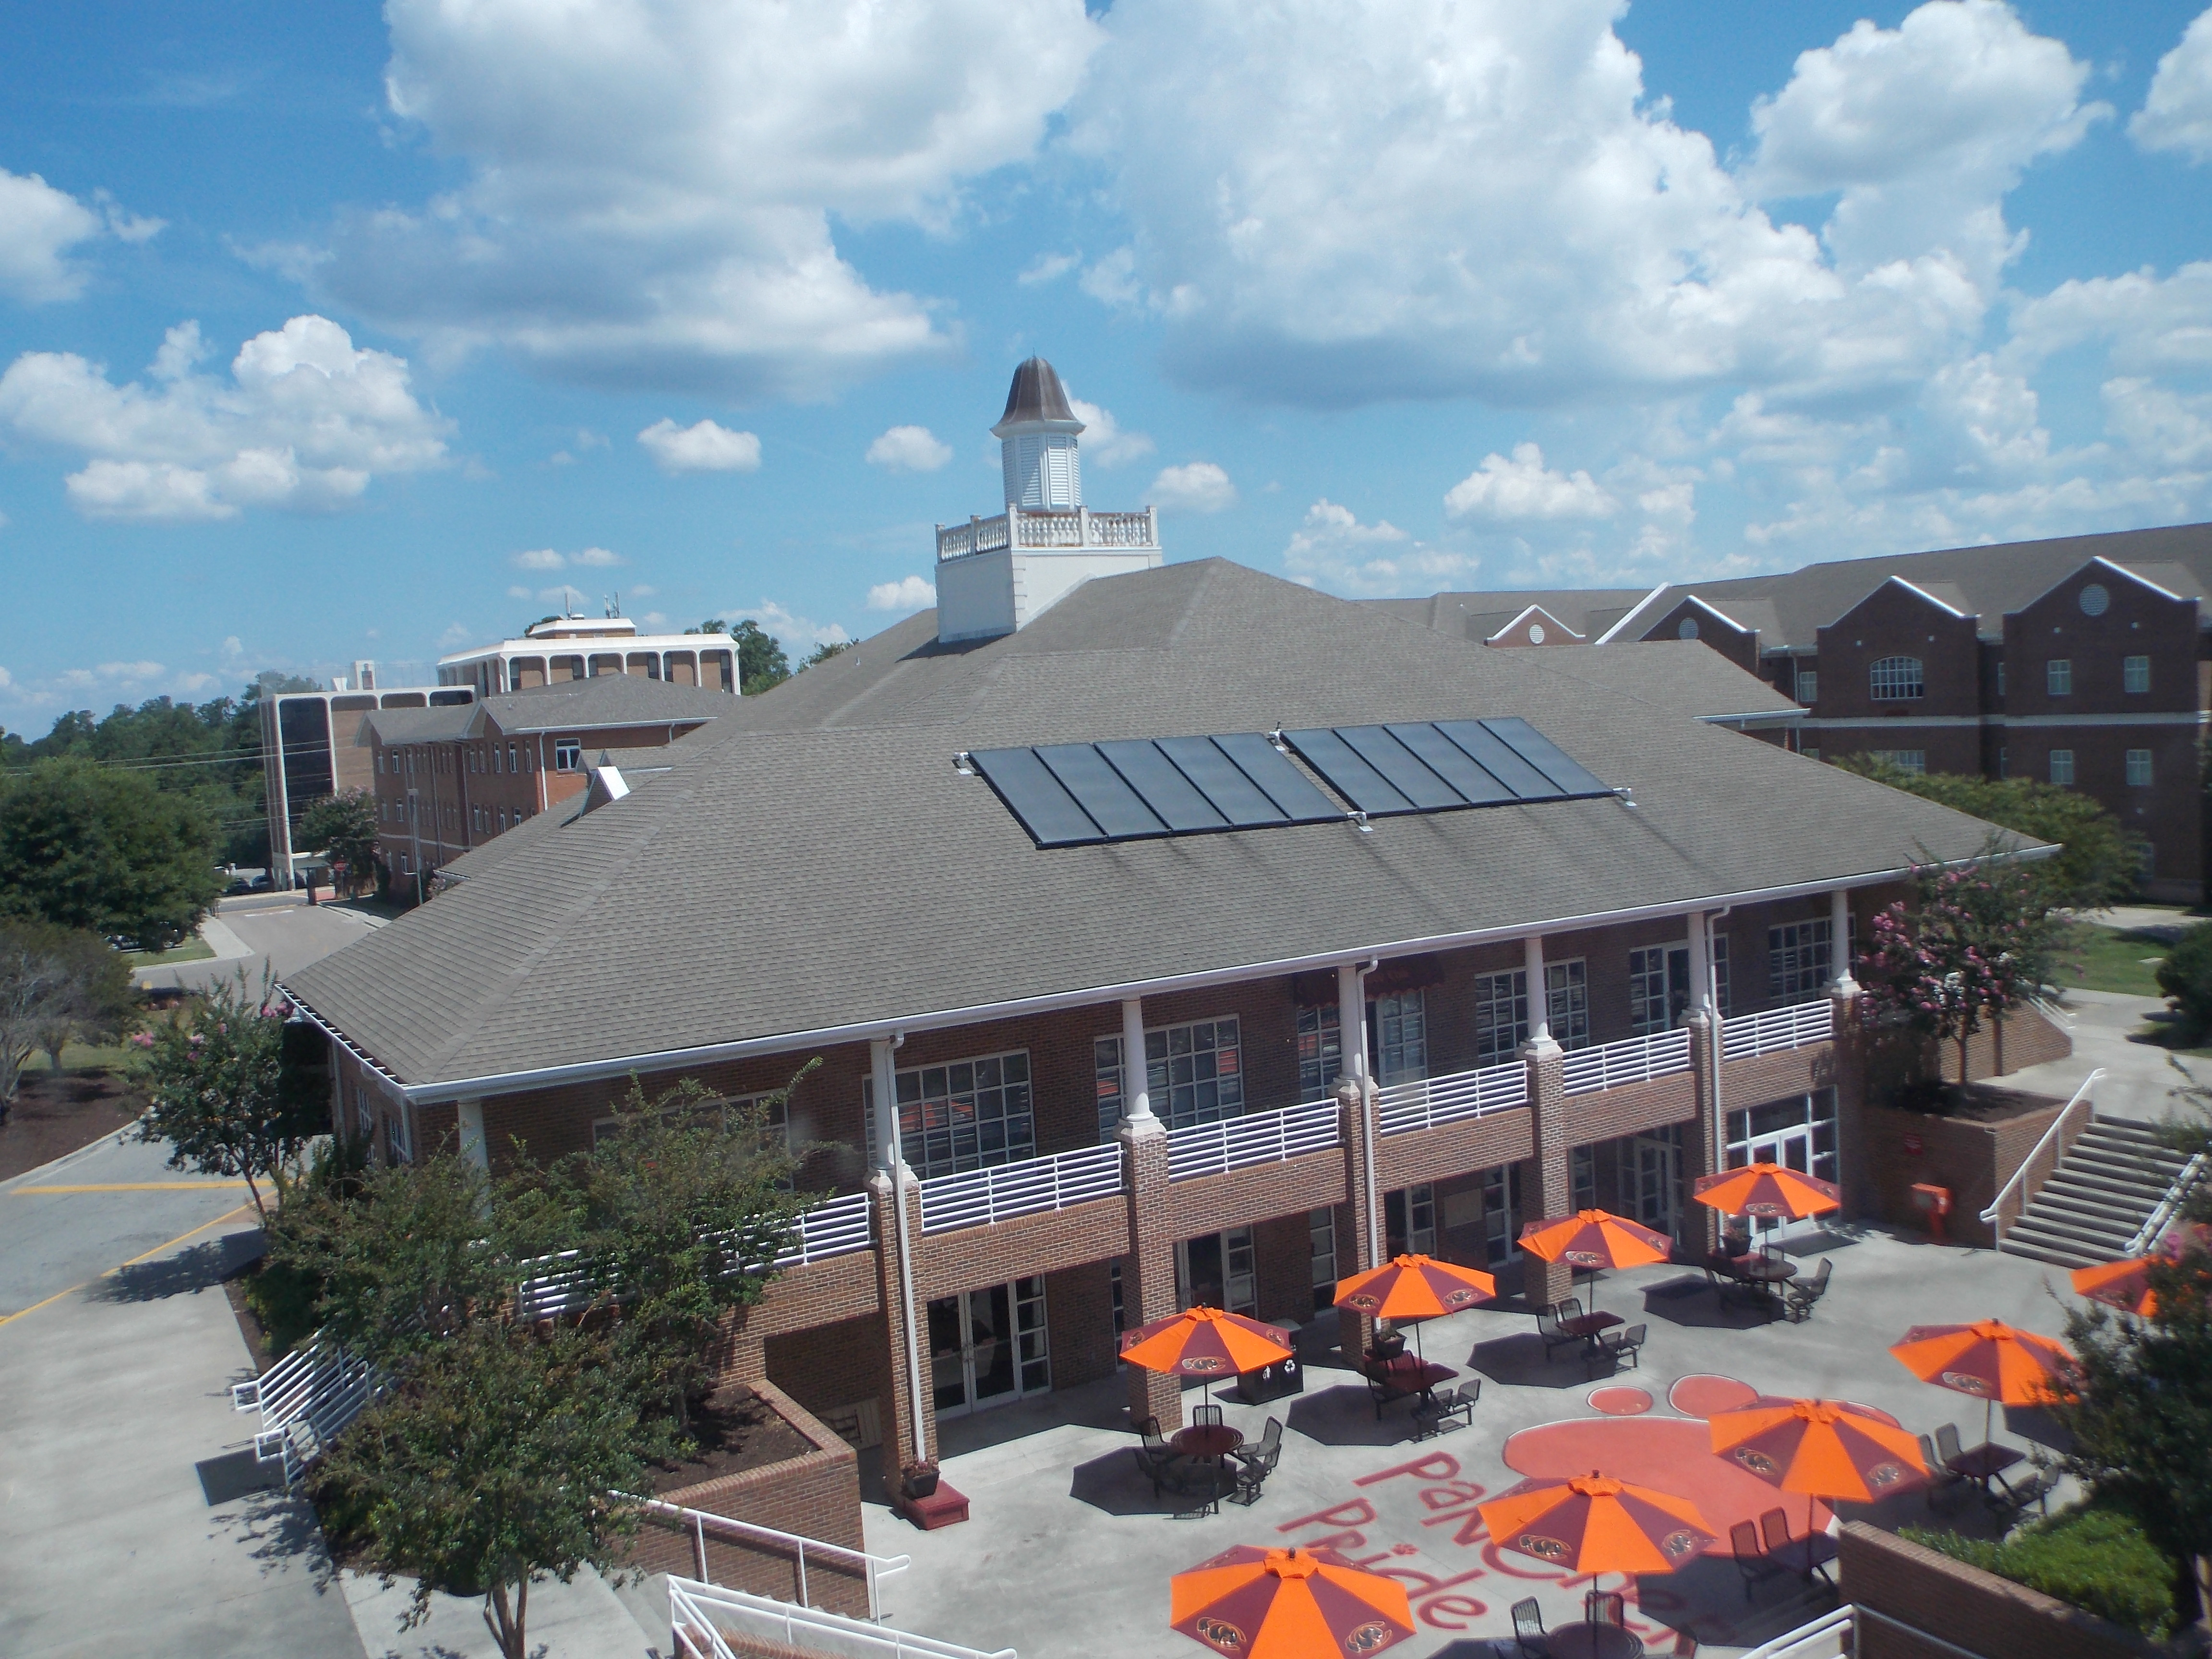 Dining Center with Solar Panels on Roof